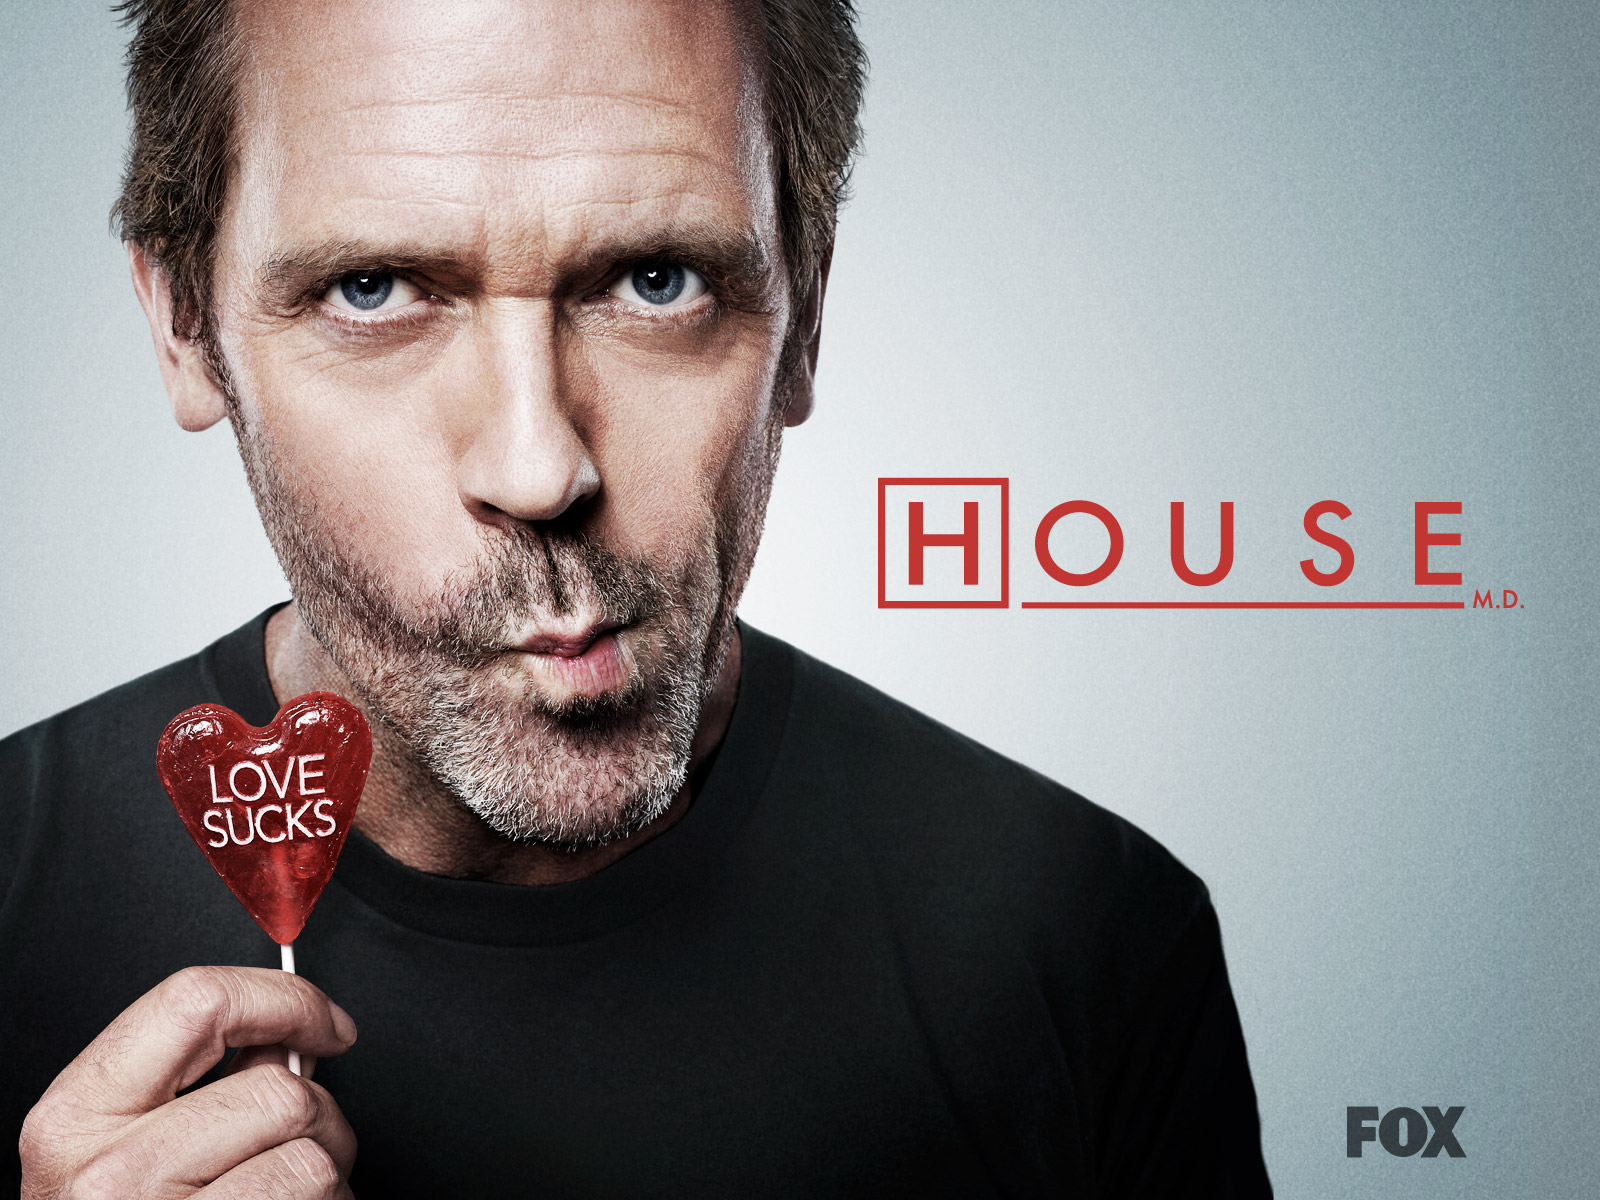 Dr House wallpaper 17